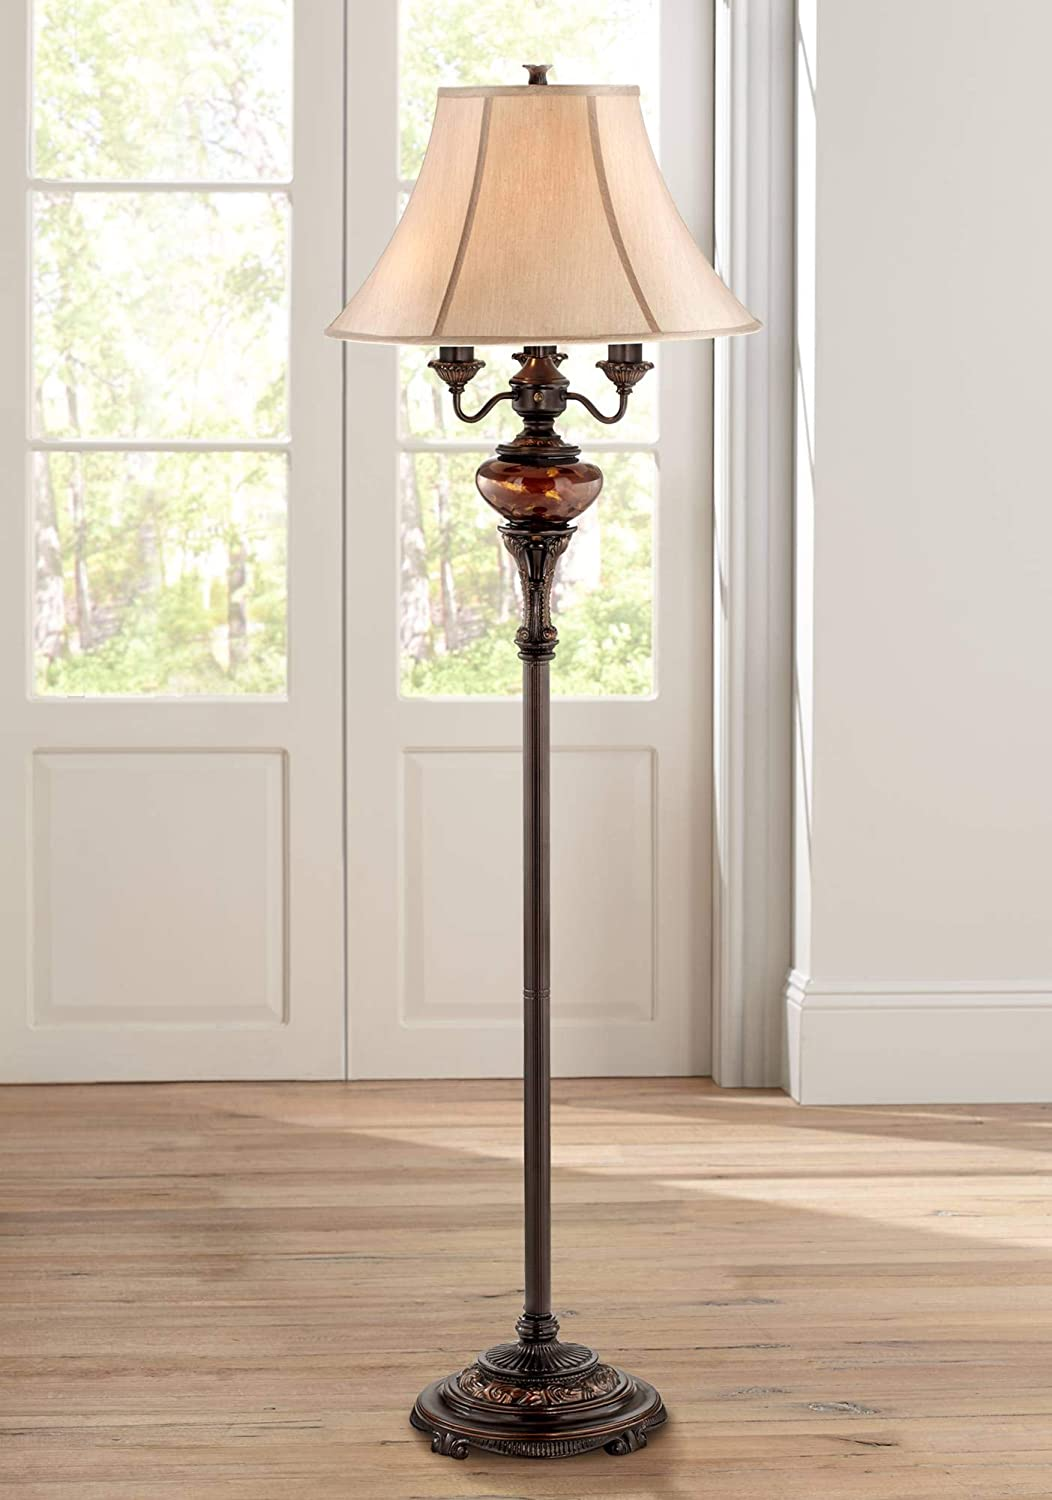 Traditional Floor Lamp 4-Light Lush Bronze Tortoise Glass Font Bell Shade for Living Room Reading Bedroom Office – Barnes and Ivy